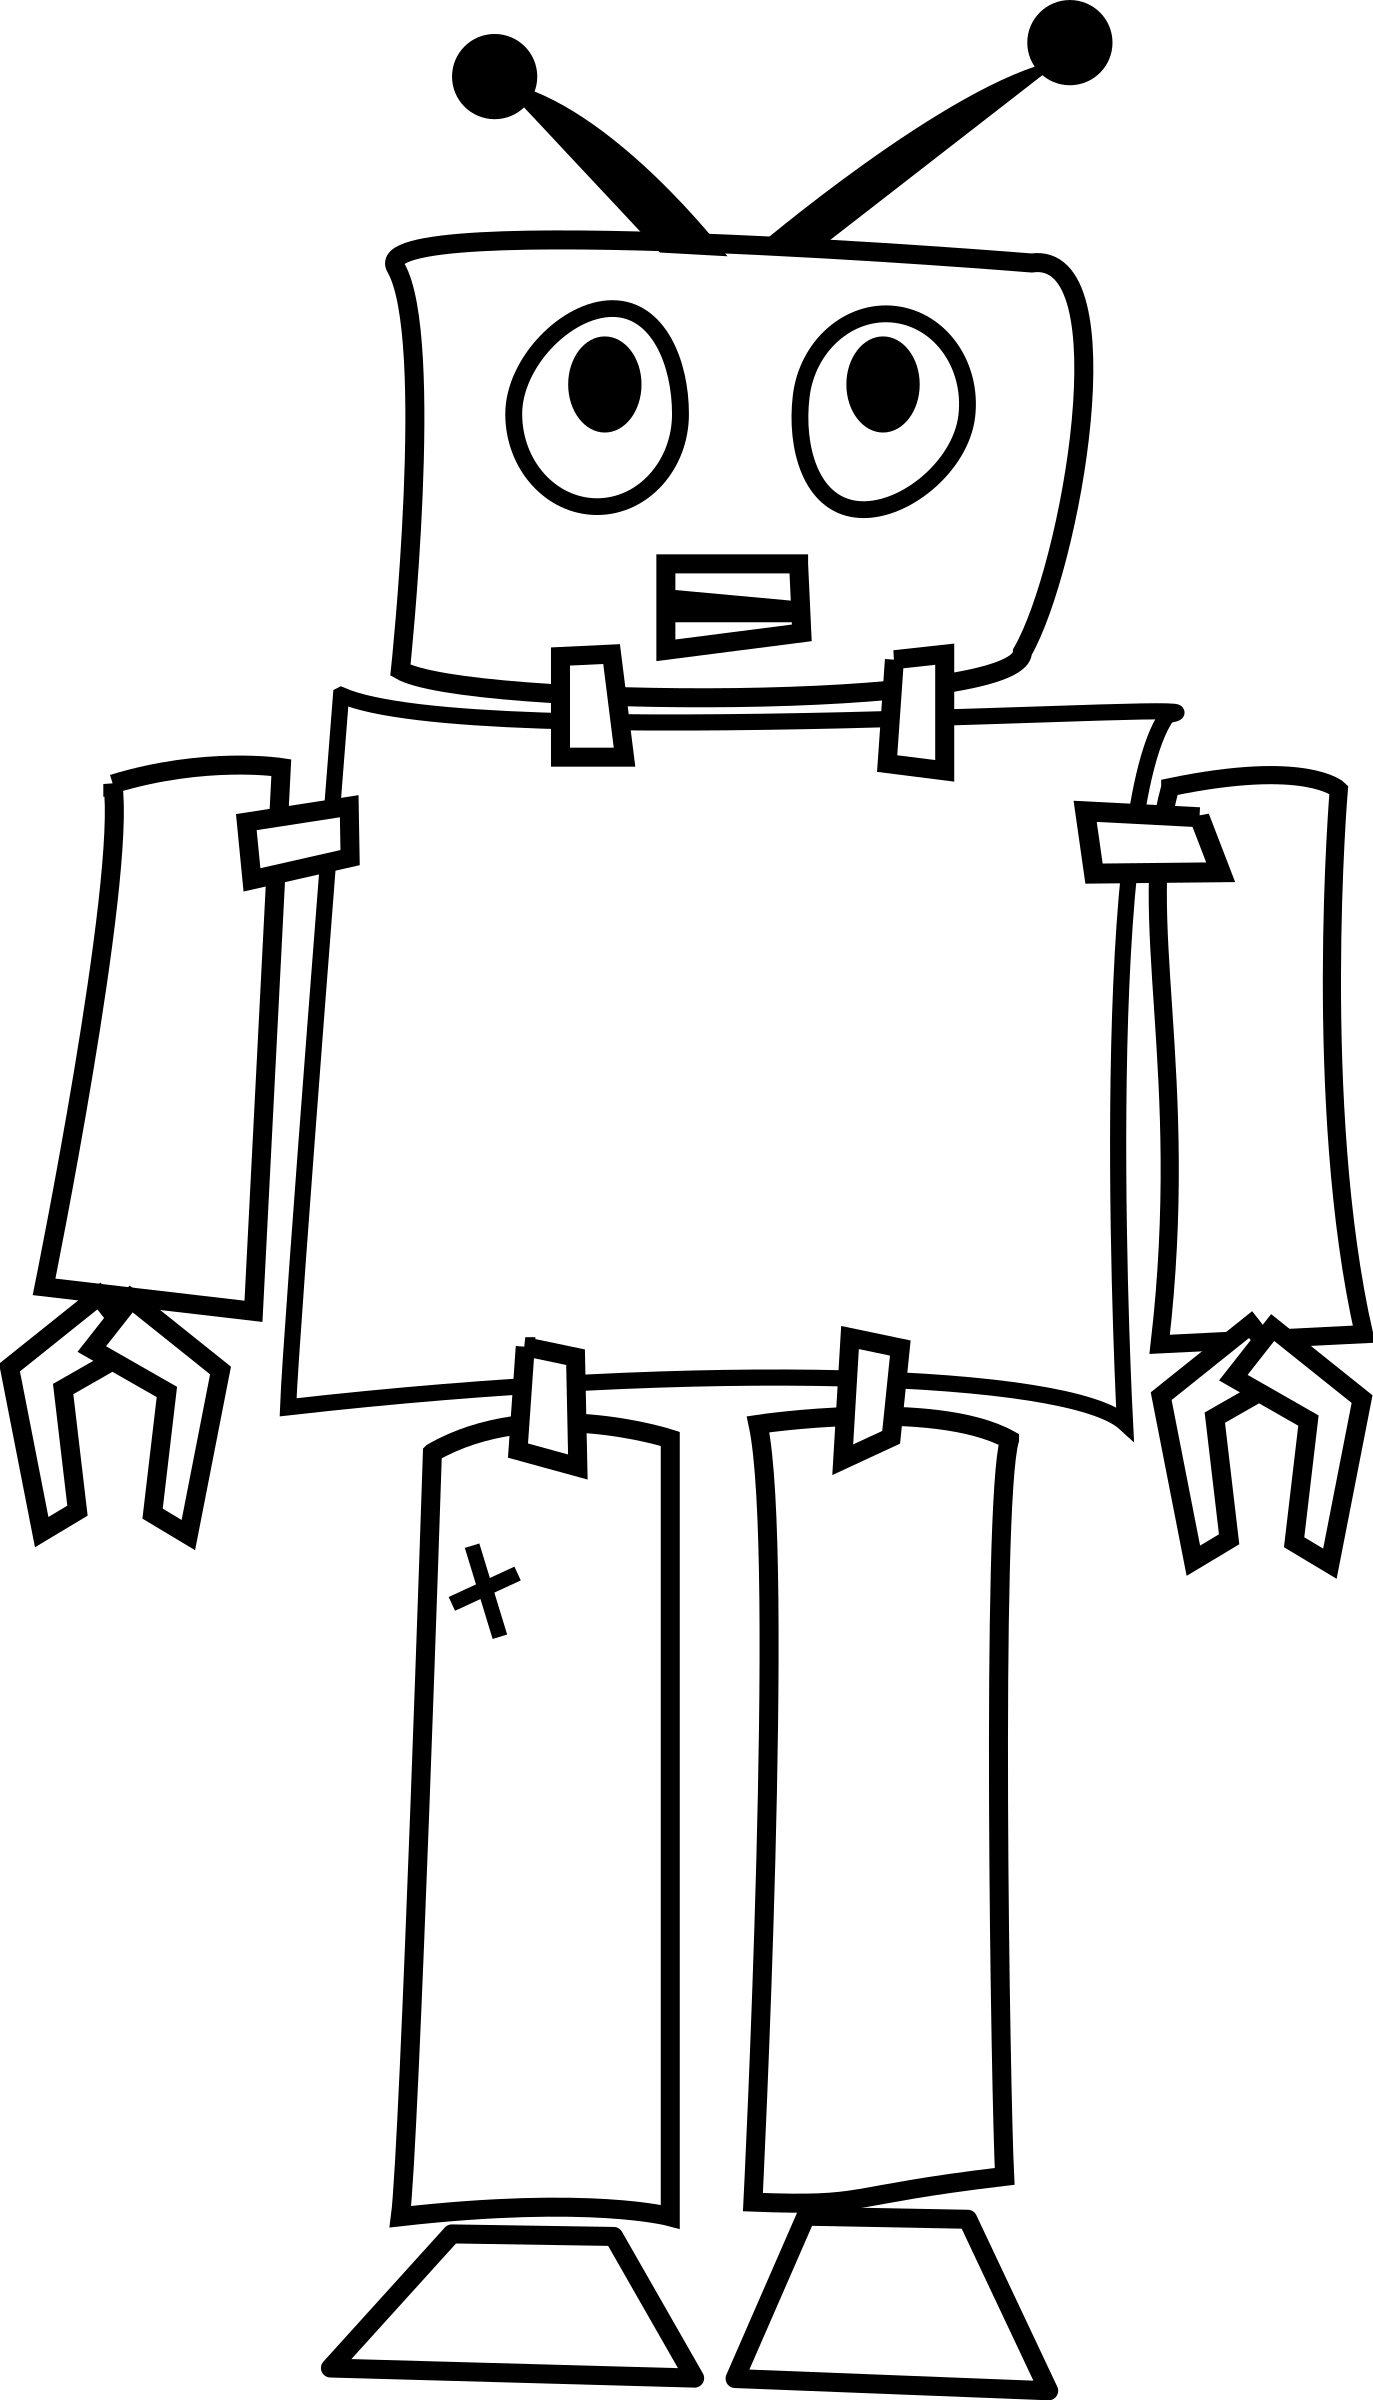 freeuse download Line art by gammillian. Drawing silhouette robot